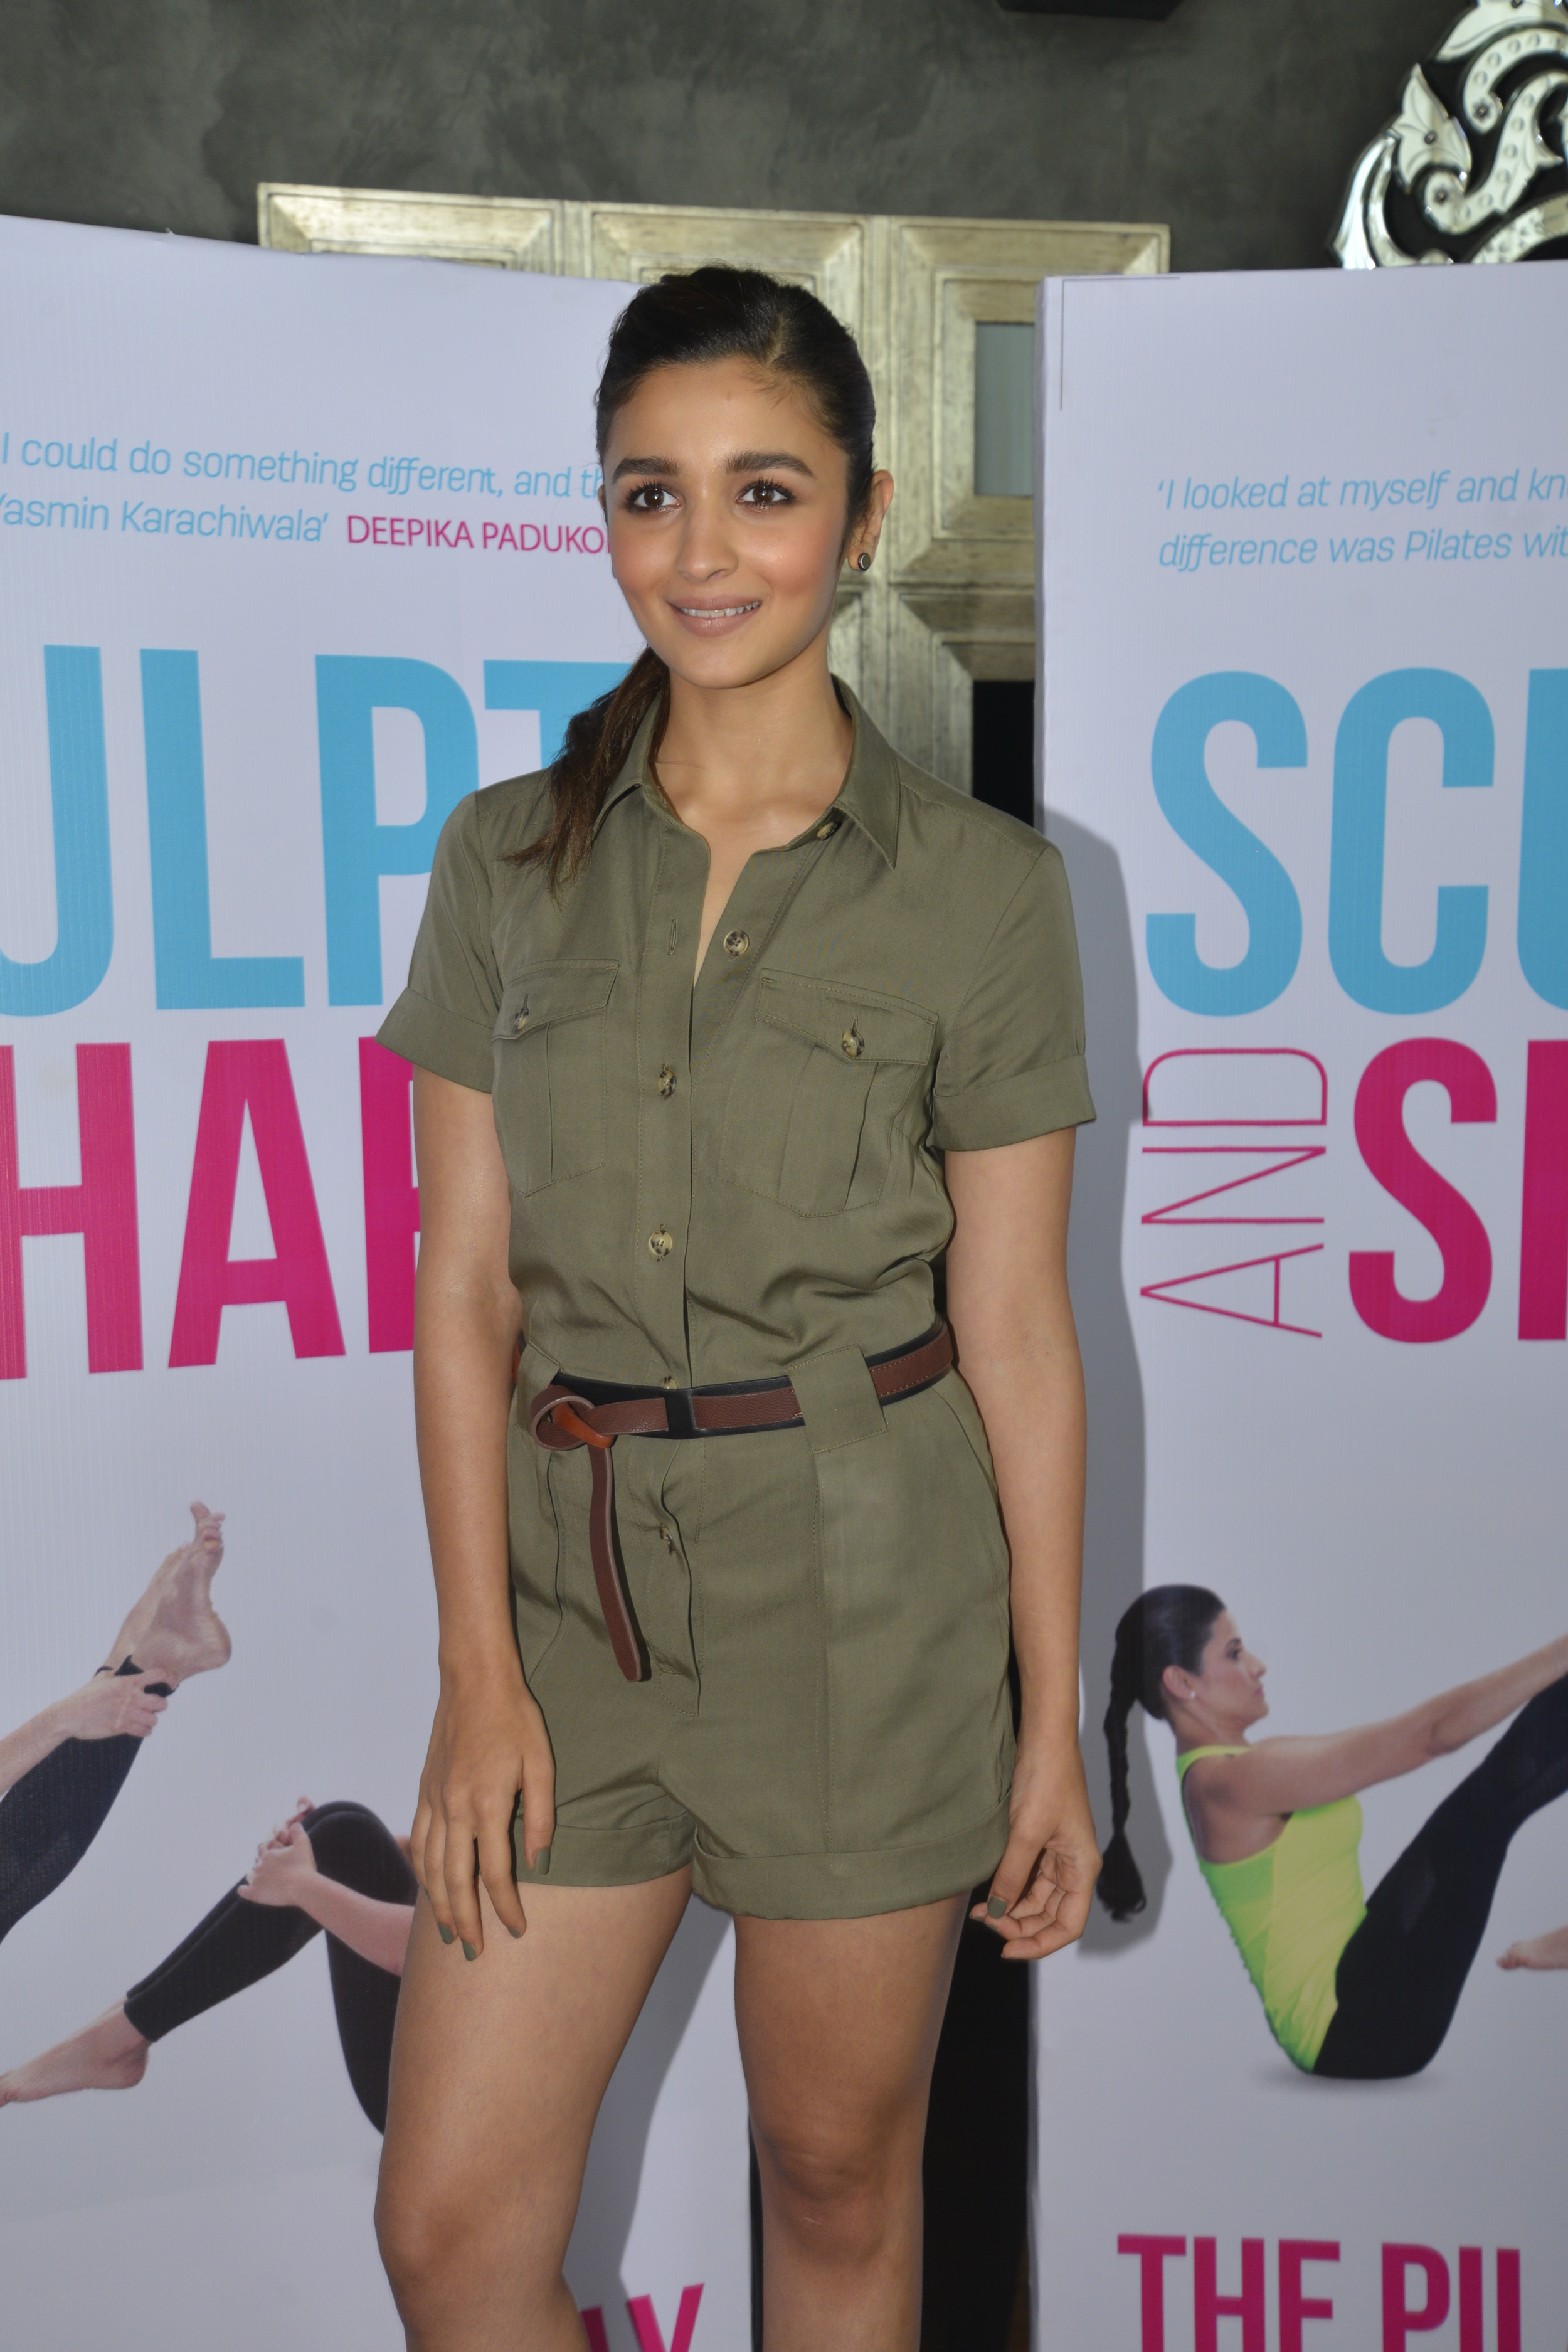 """Alia Bhatt     """"I have only been doing Pilates for 8 months and I've seen a massive change in my core strength, so imagine when I do it for longer. Pilates is all about the hand eye coordination and focus. You have to mentally be very present to do it right, there is not a single point where your core is at ease, you have to keep it activated at all time, but that comes with lots of practice.    A special room at Body Image is dedicated only to Pilates, which is made up of all the necessary and extremely fascinating Pilates equipment. We have the REFORMER which is multitalented cause you can use it for 3 different types of workouts, then there's the WUNDA CHAIR which is as fun as the name suggests and then comes my favourite which is CORE ALLIGN - which is again as the name suggests the best thing for your CORE  """""""